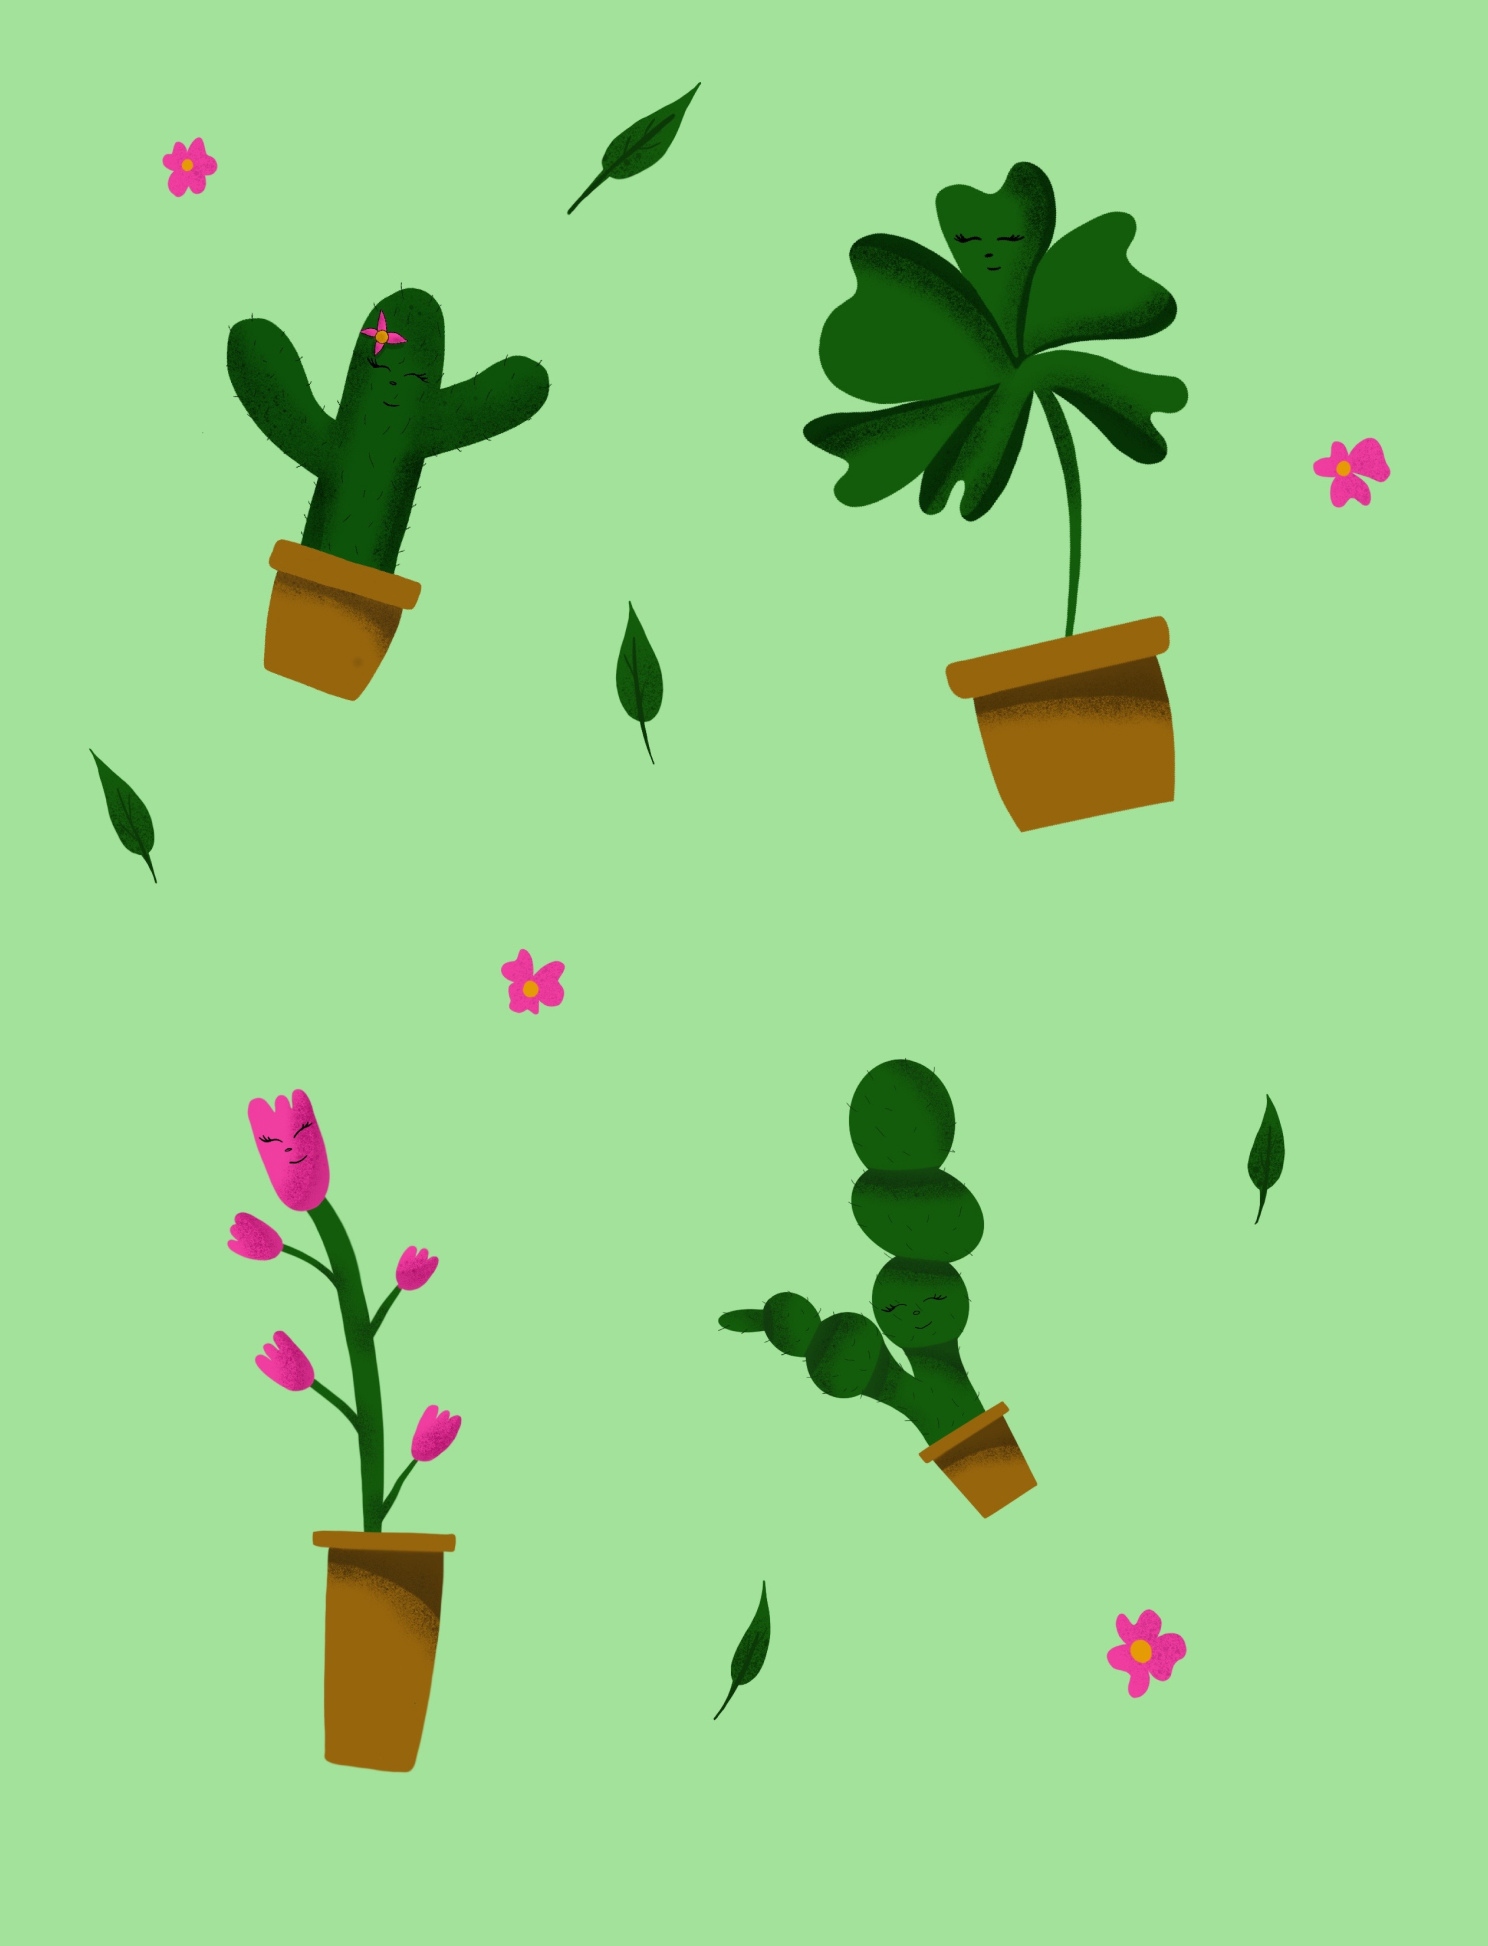 Illustration de cactus